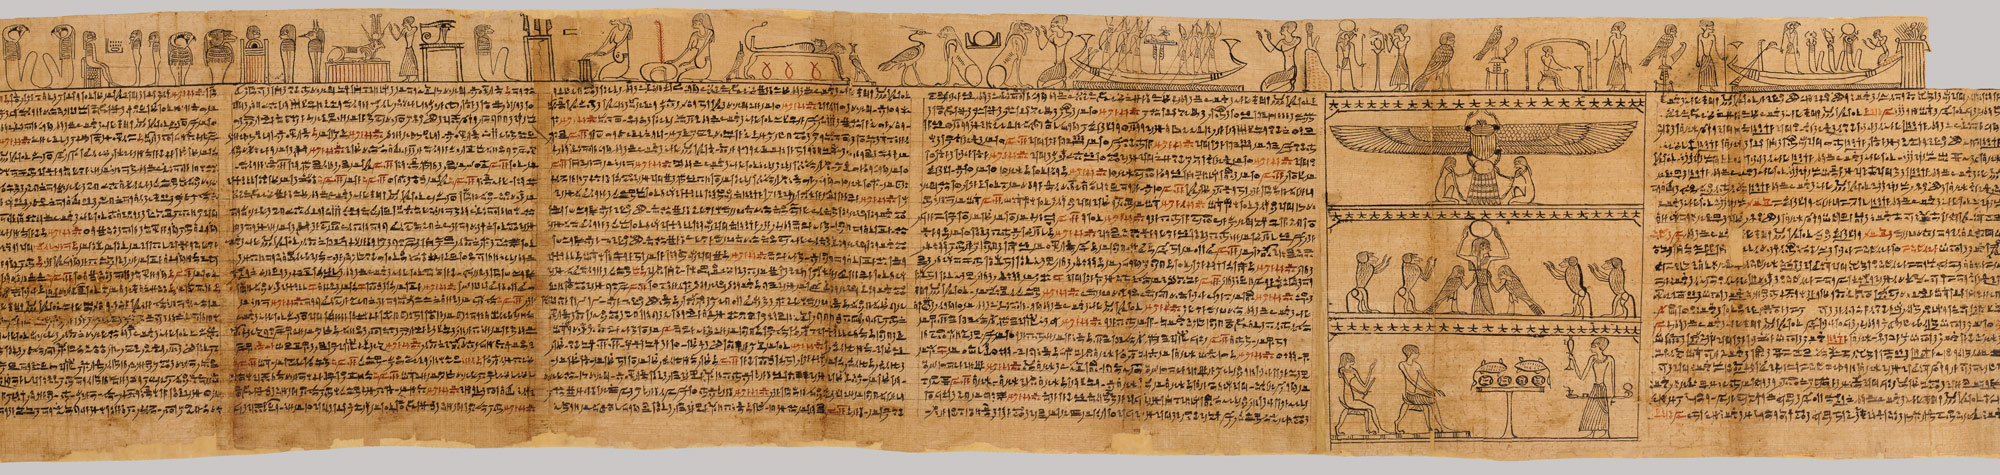 notes on egypts history essay Find out more about the history of ancient egypt, including videos, interesting articles, pictures, historical features and more get all the facts on historycom.